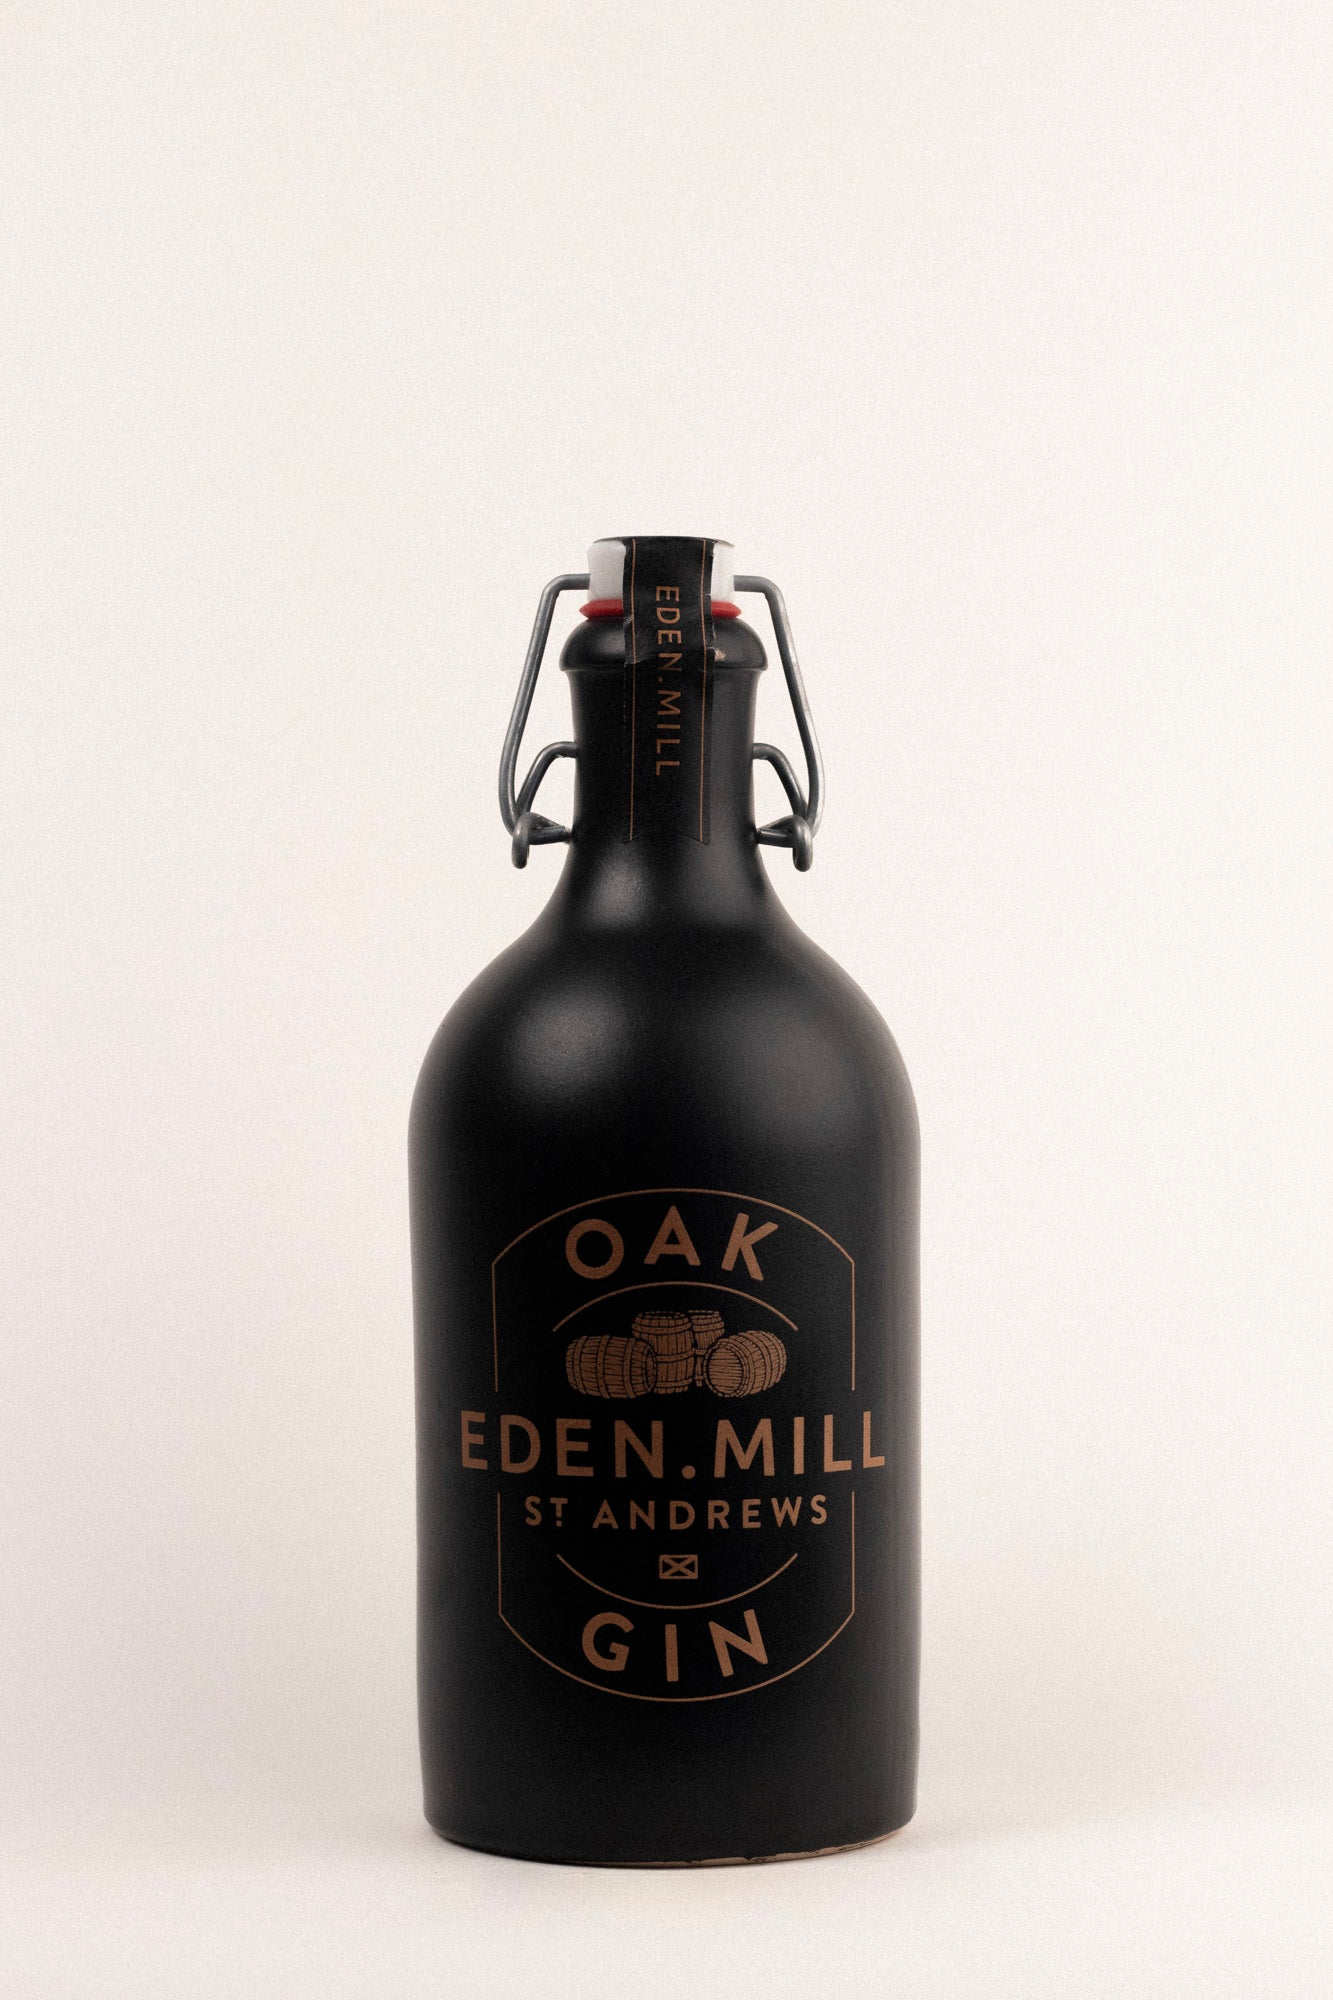 Eden Mill Scottish Oak Gin, 500ml